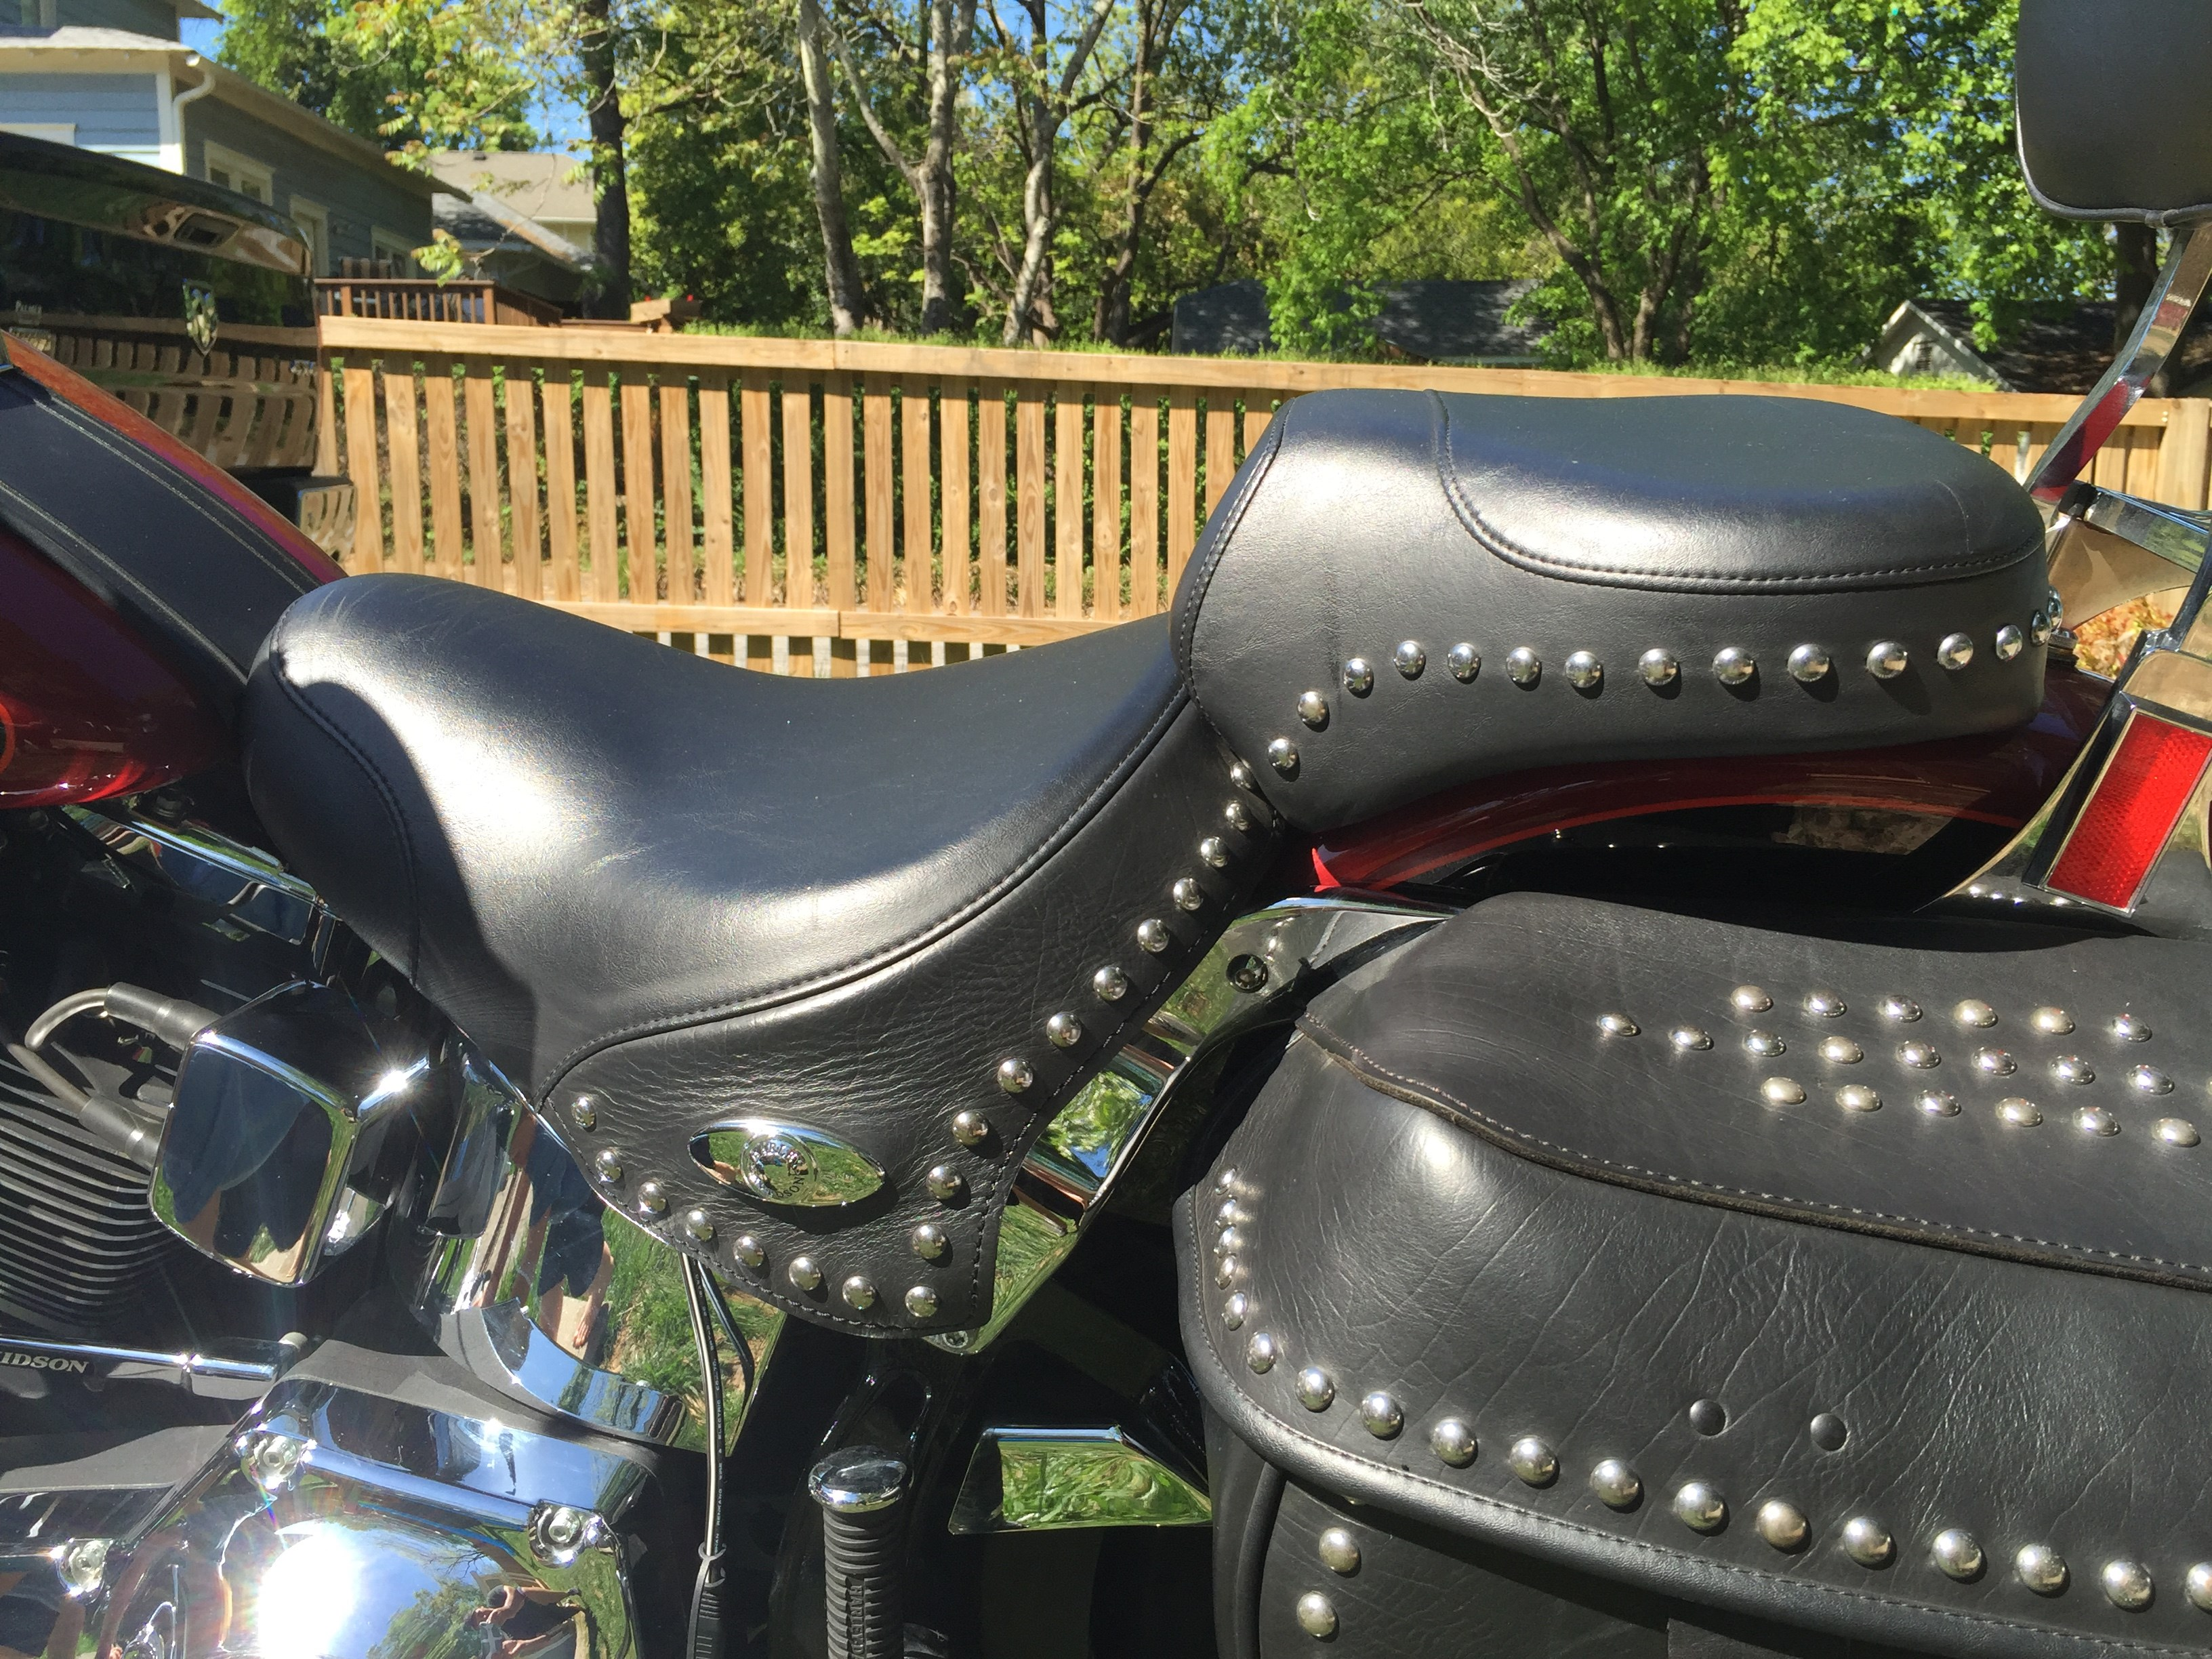 Harley Touring Motorcycles For Sale Atlanta Ga >> 2006 Harley-Davidson® FLSTC/I Heritage Softail® Classic (DARK RED AND BLACK), atlanta, Georgia ...